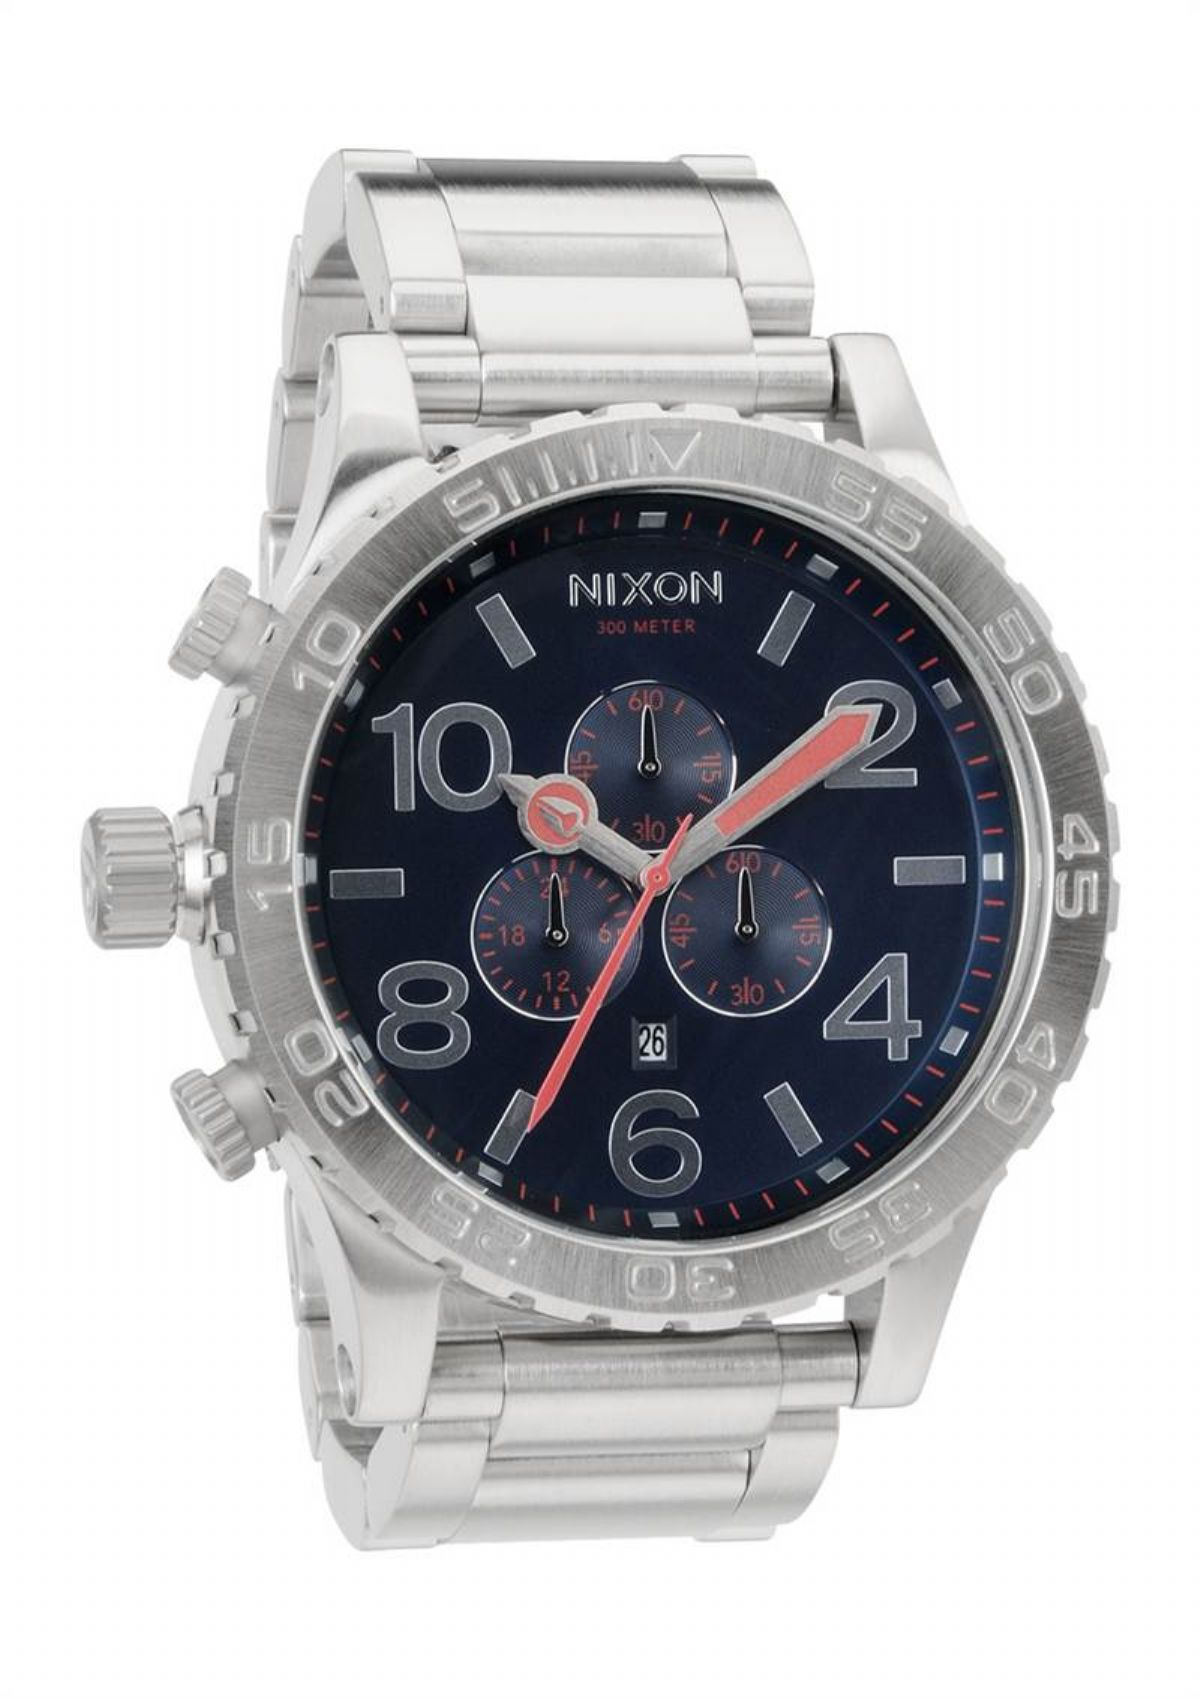 upload/product_display_image/201406/the_51-30_chrono_navy_a.jpg